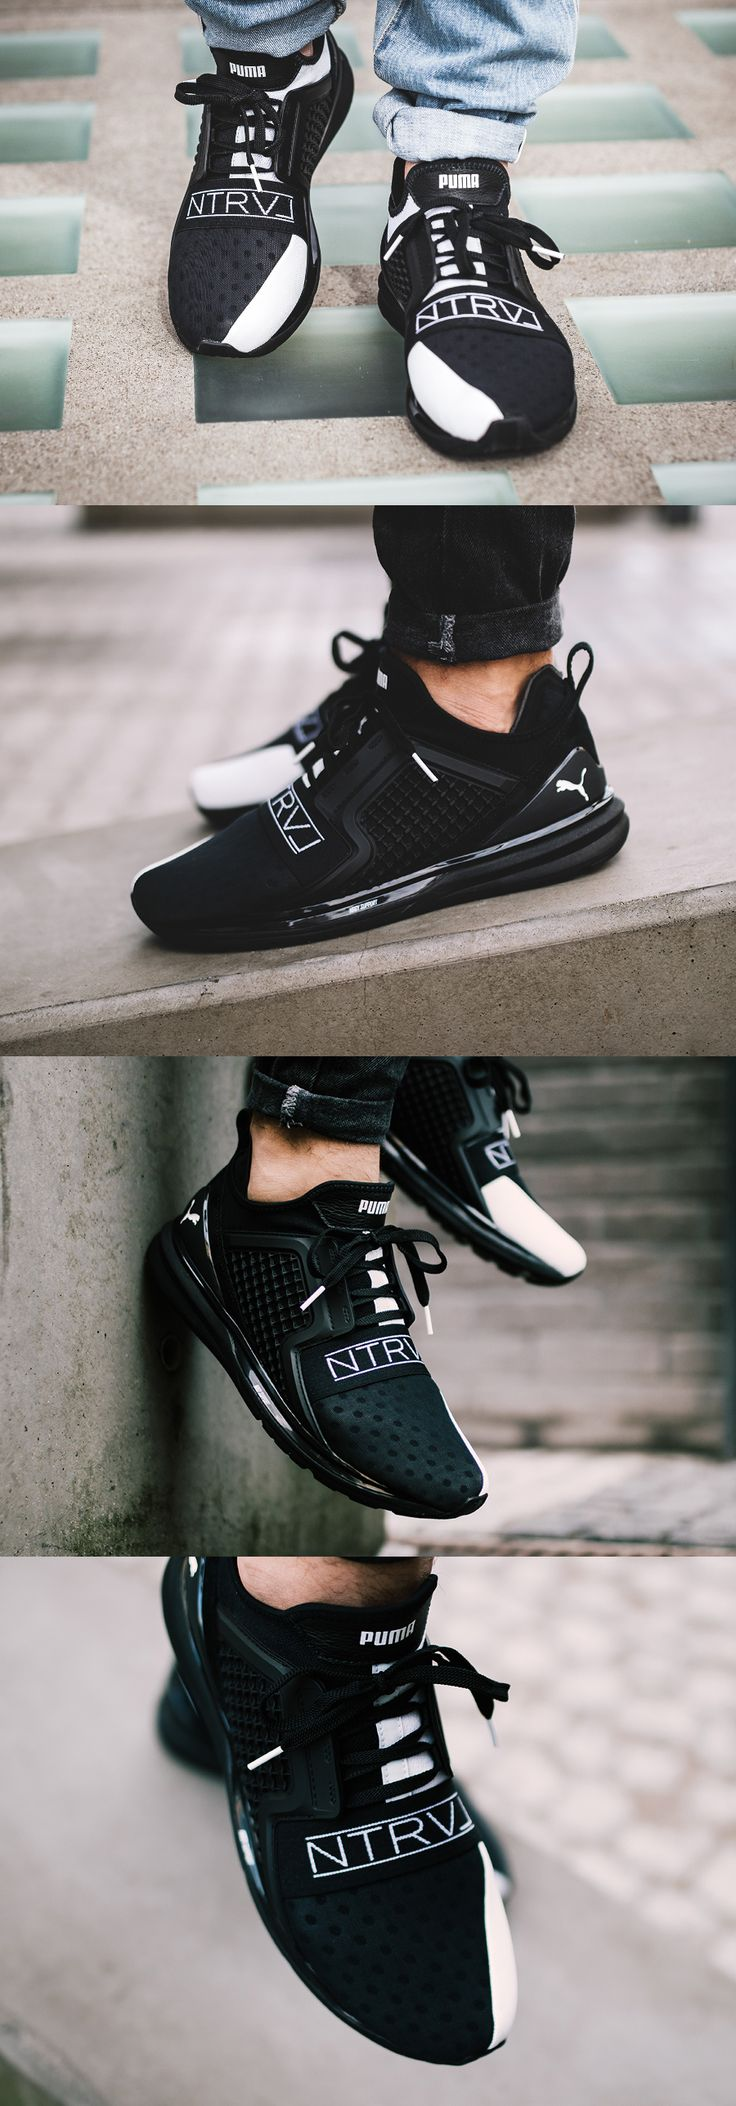 #STAPLE X #PUMA #IGNITE #LIMITLESS #BLACK #WHITE http://fr.puma.com/fr/fr/collections/select/puma-x-staple?affID=M2L&mktID=AFF:M2L:Tradedoubler:affiliate:FR